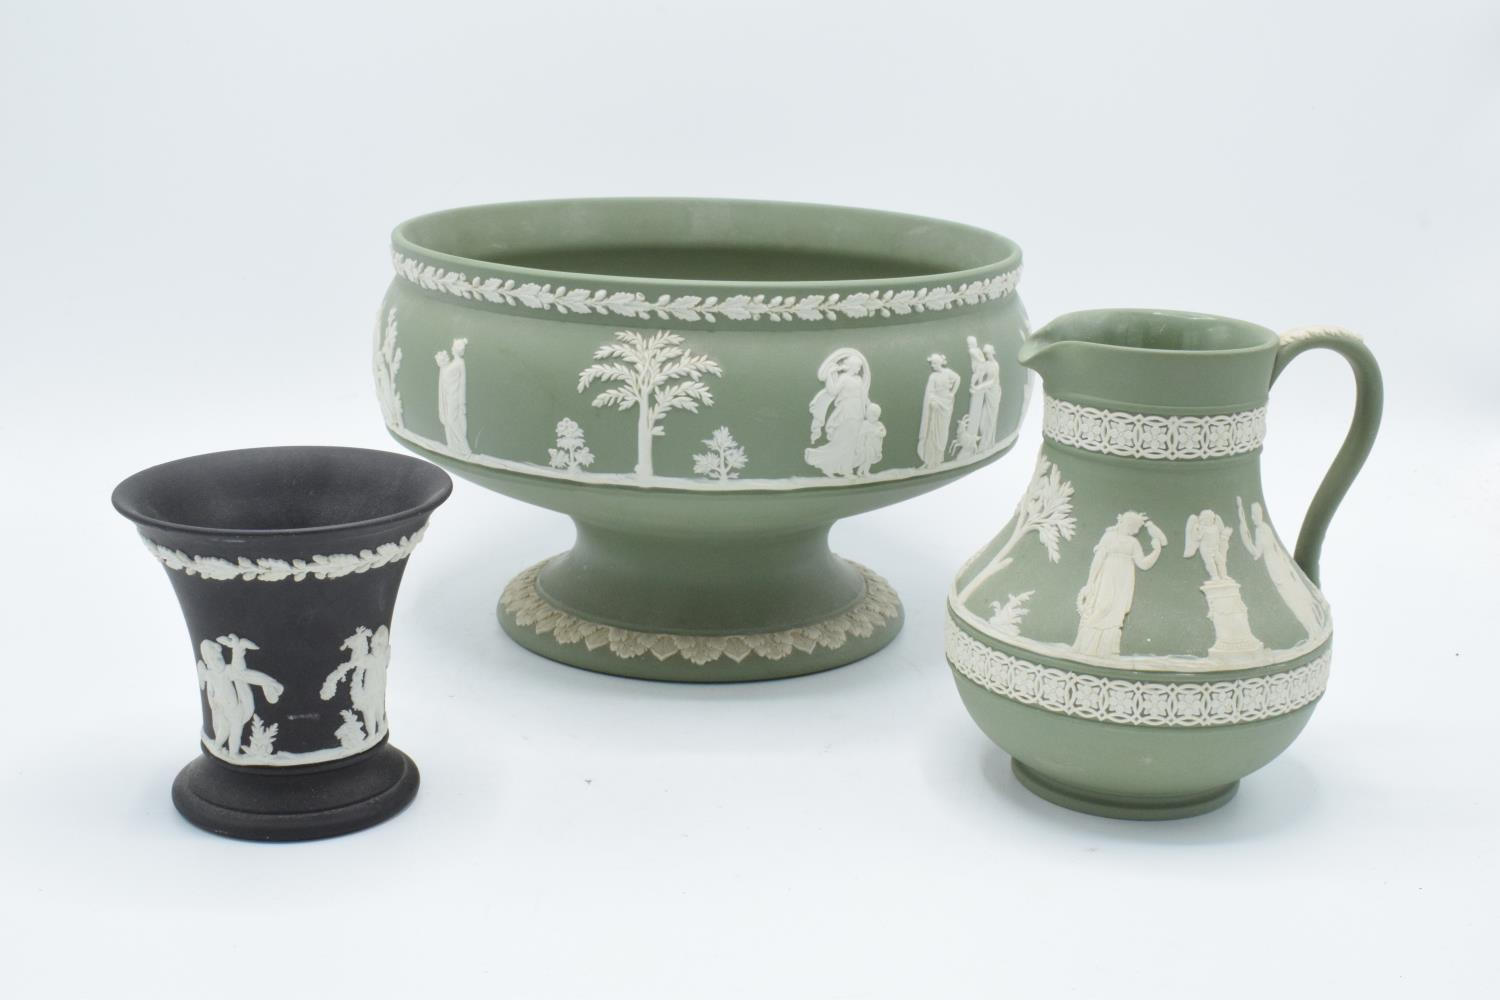 Wedgwood Jasperware sage green footed bowl together with a water jug and a black vase (3). In good